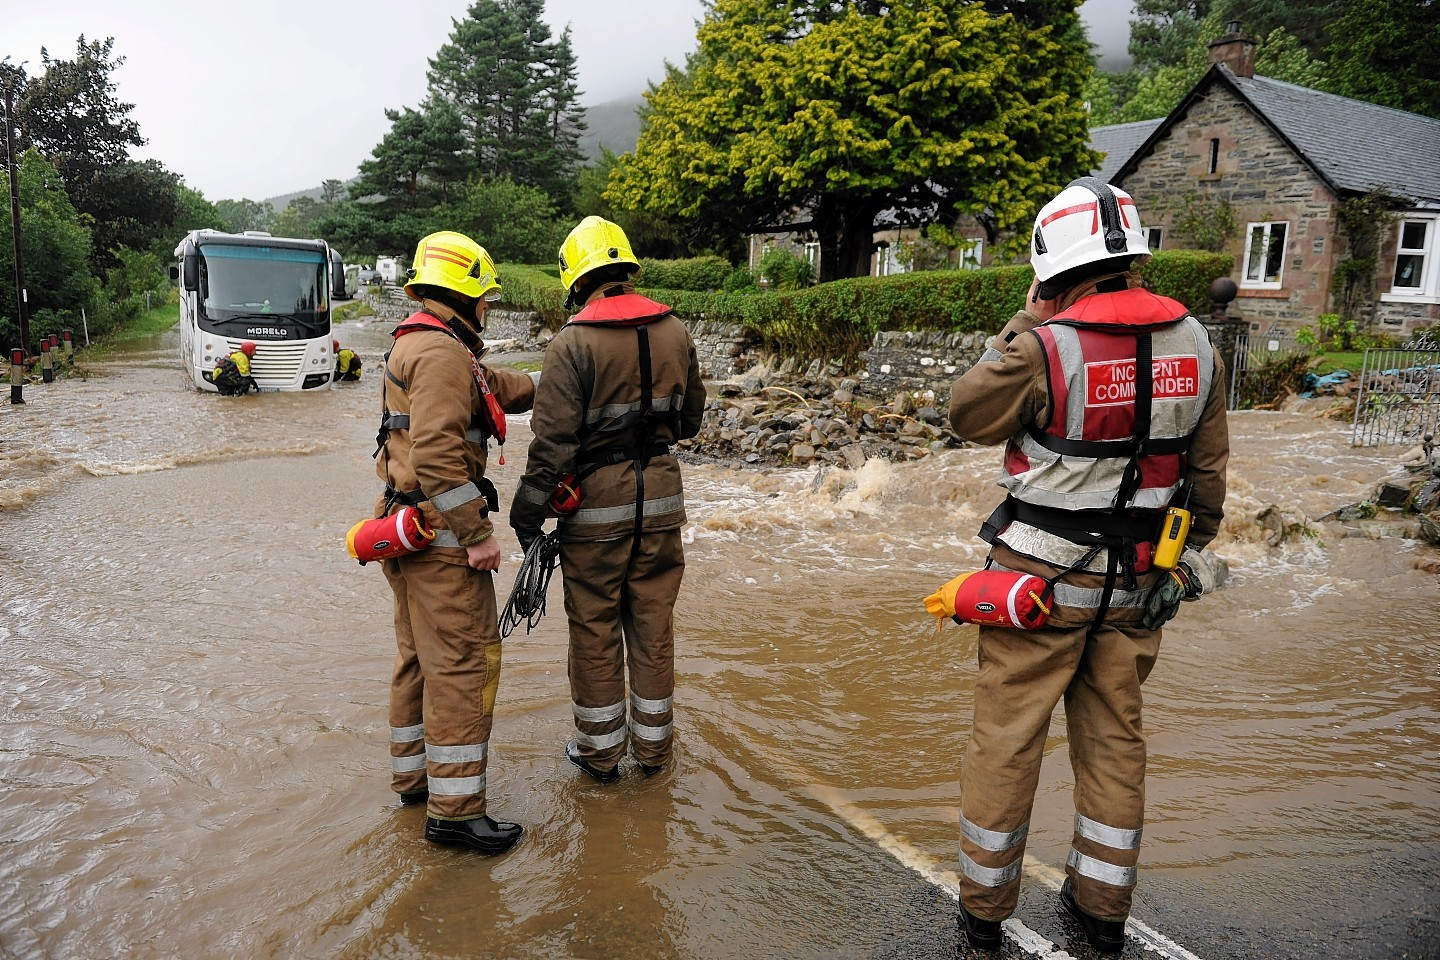 Firefighters deal with flooding near Ullapool